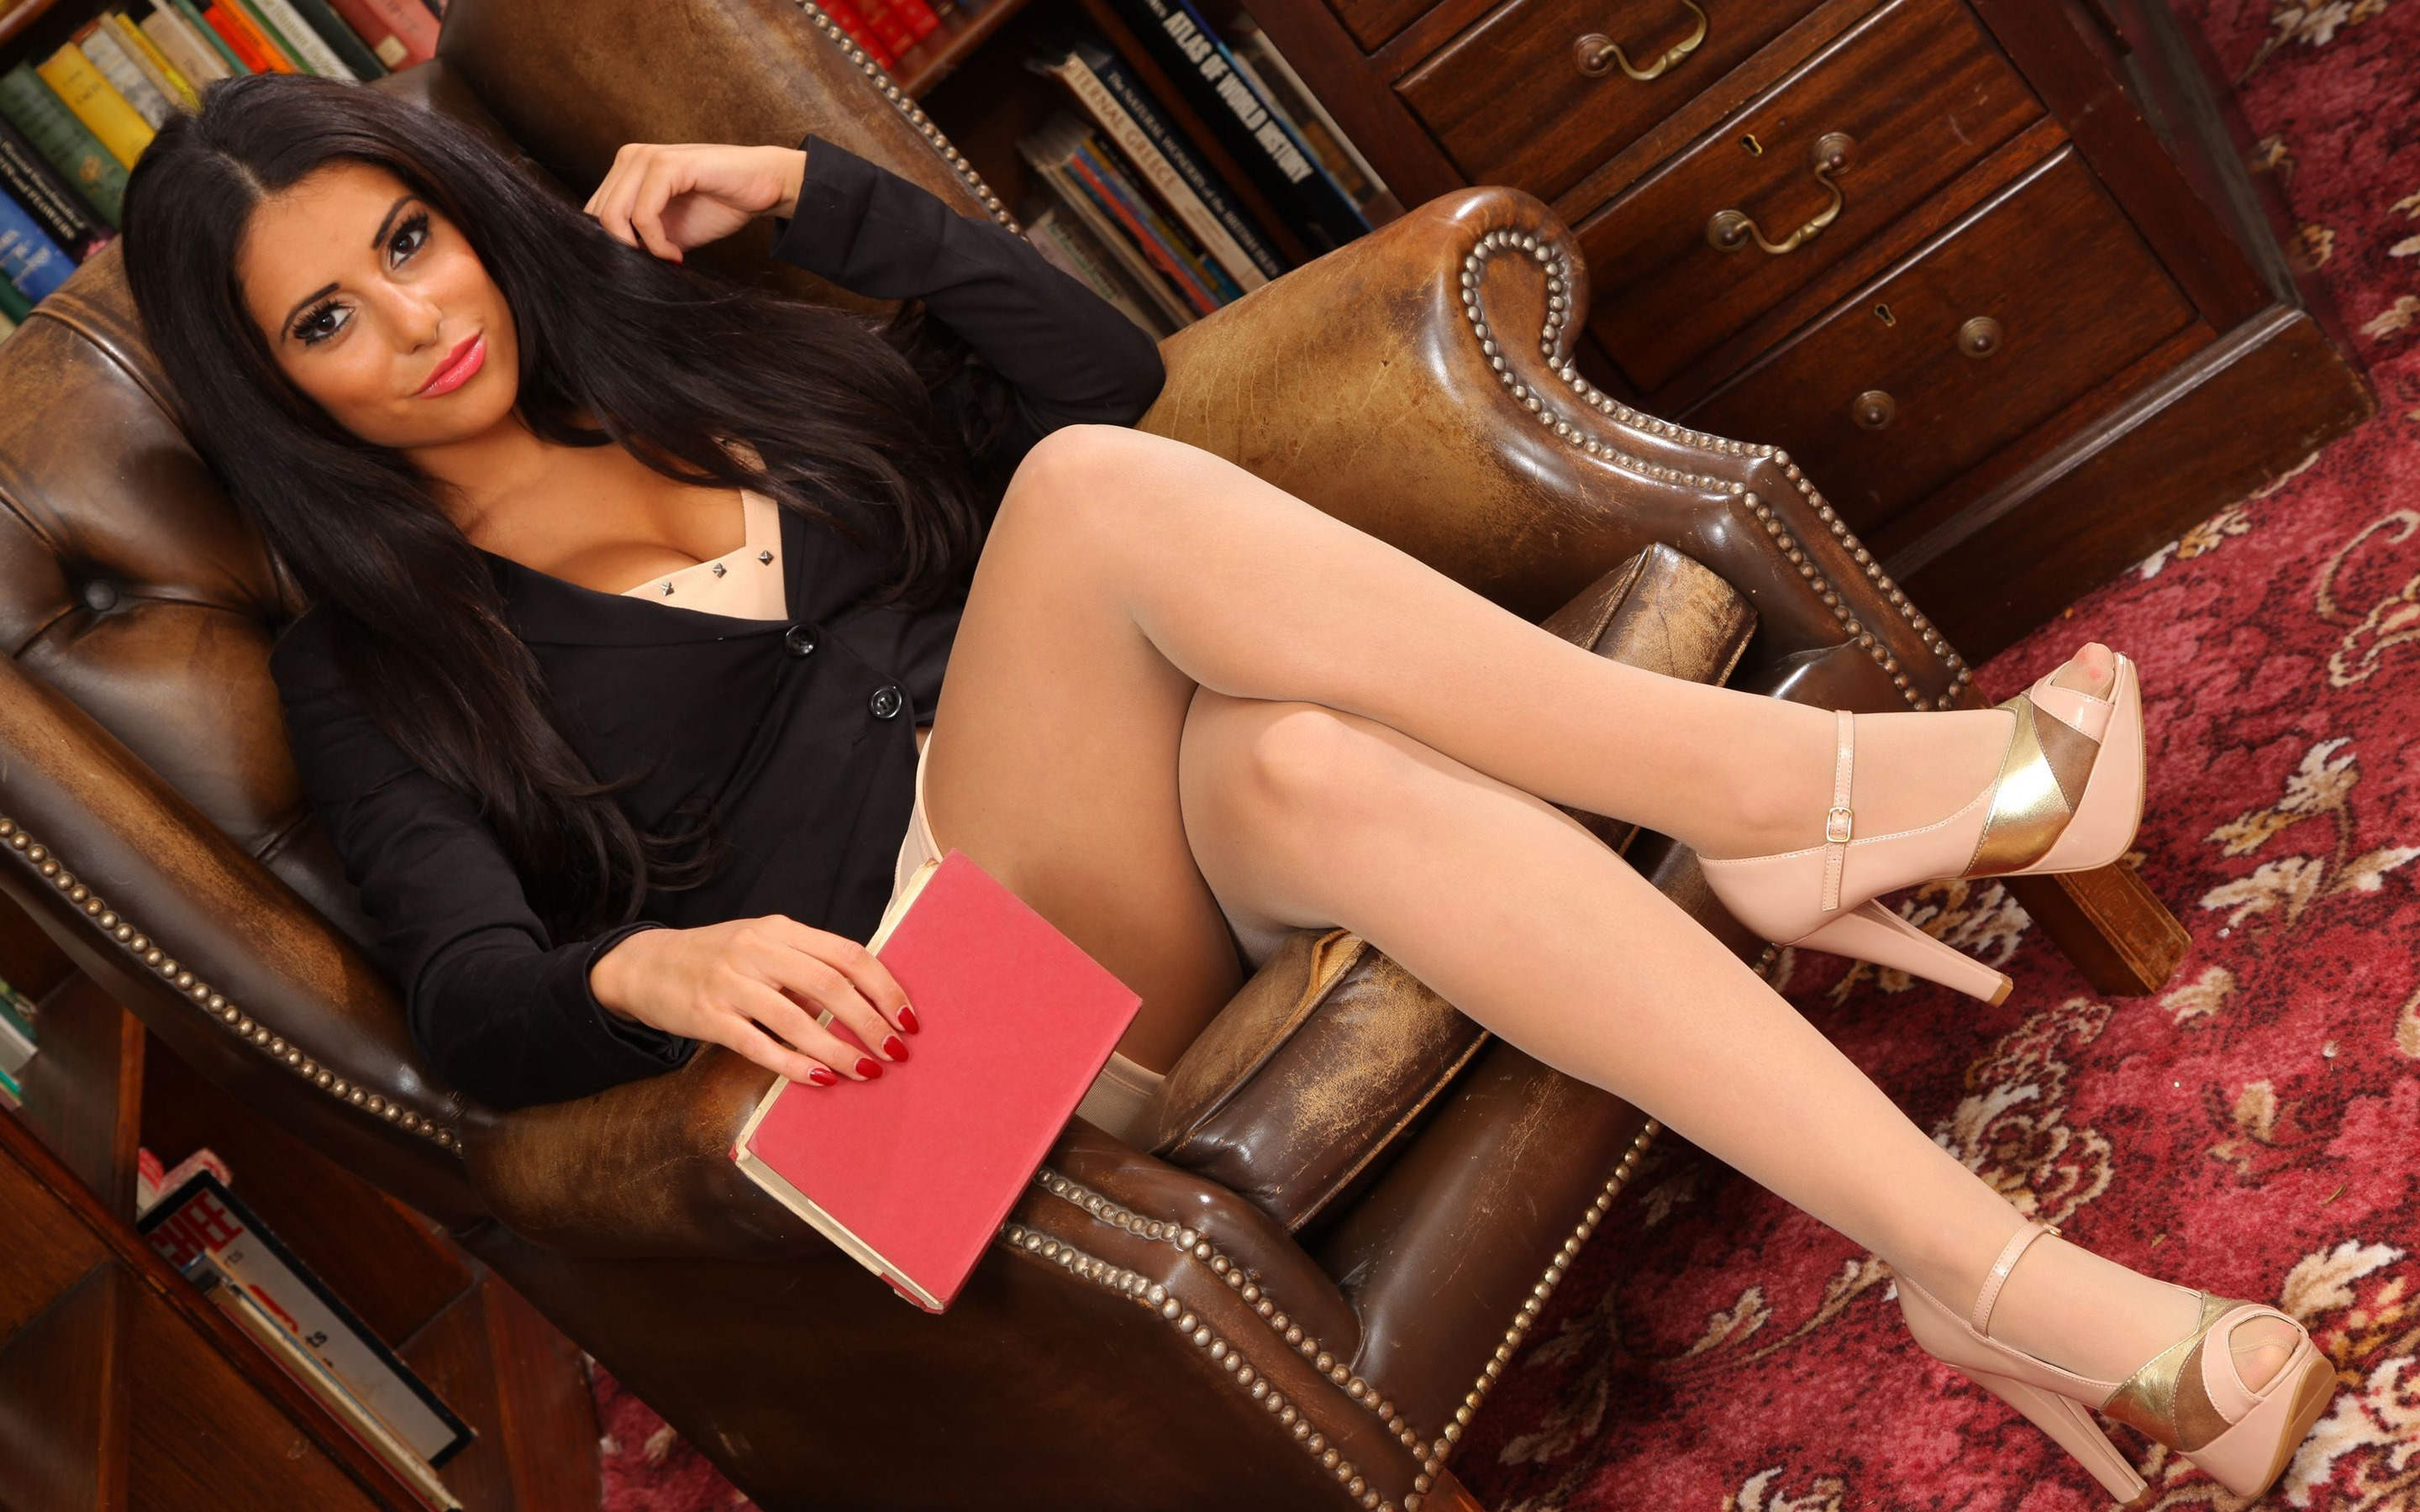 Classy brunette babe Ruth Medina masturbates with foot fetish elements № 331780 загрузить